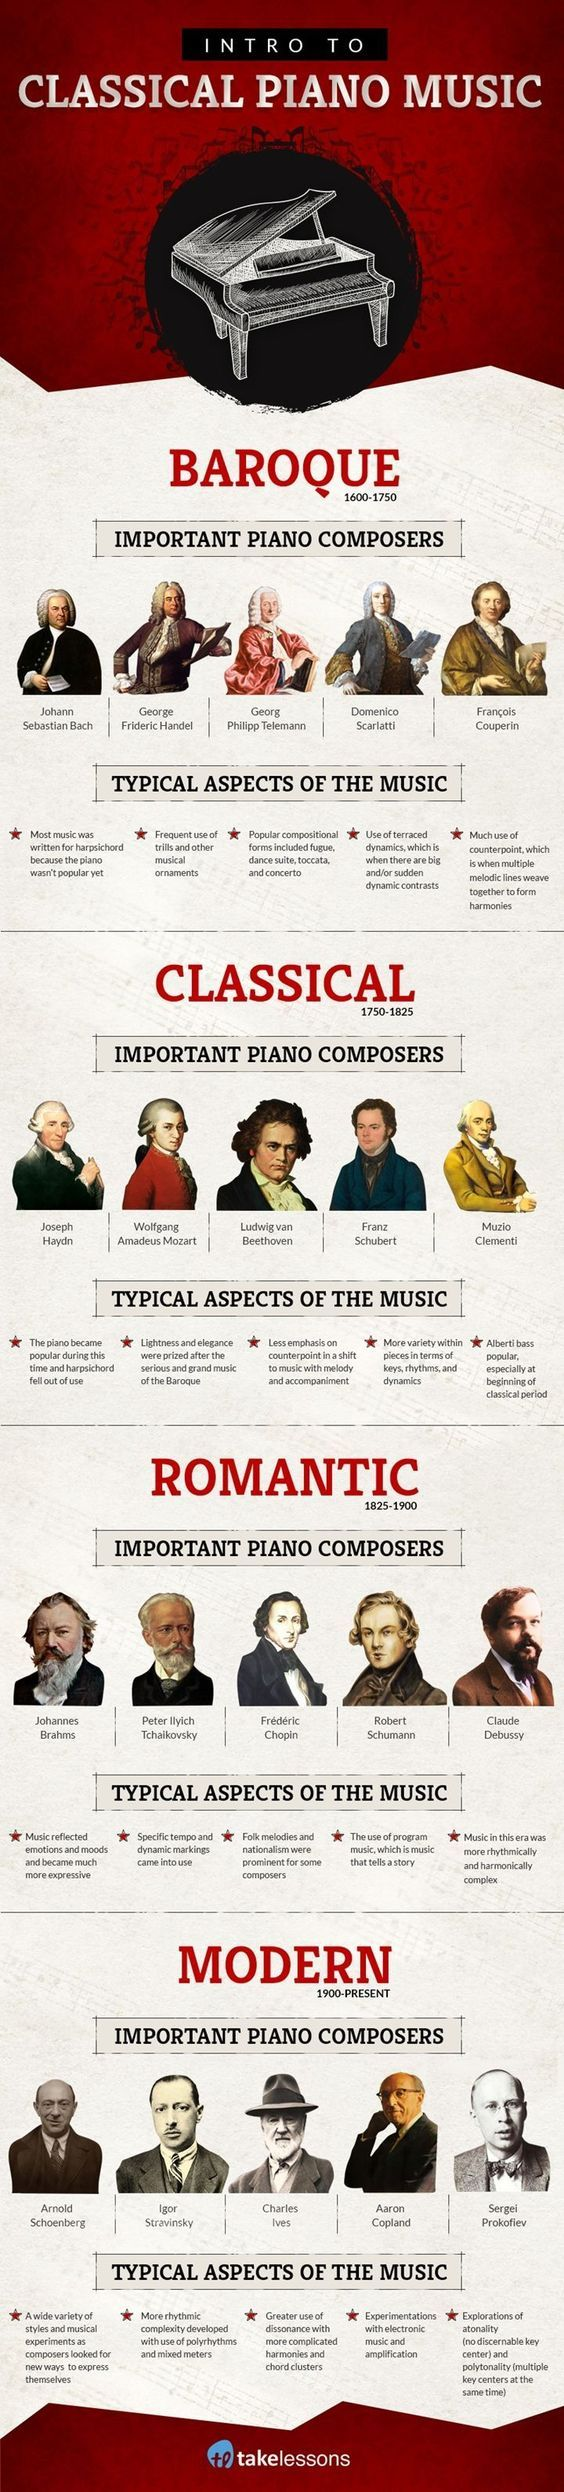 Curious about the history of classical piano music? Take a journey through history and learn about the four distinct musical periods in this lesson